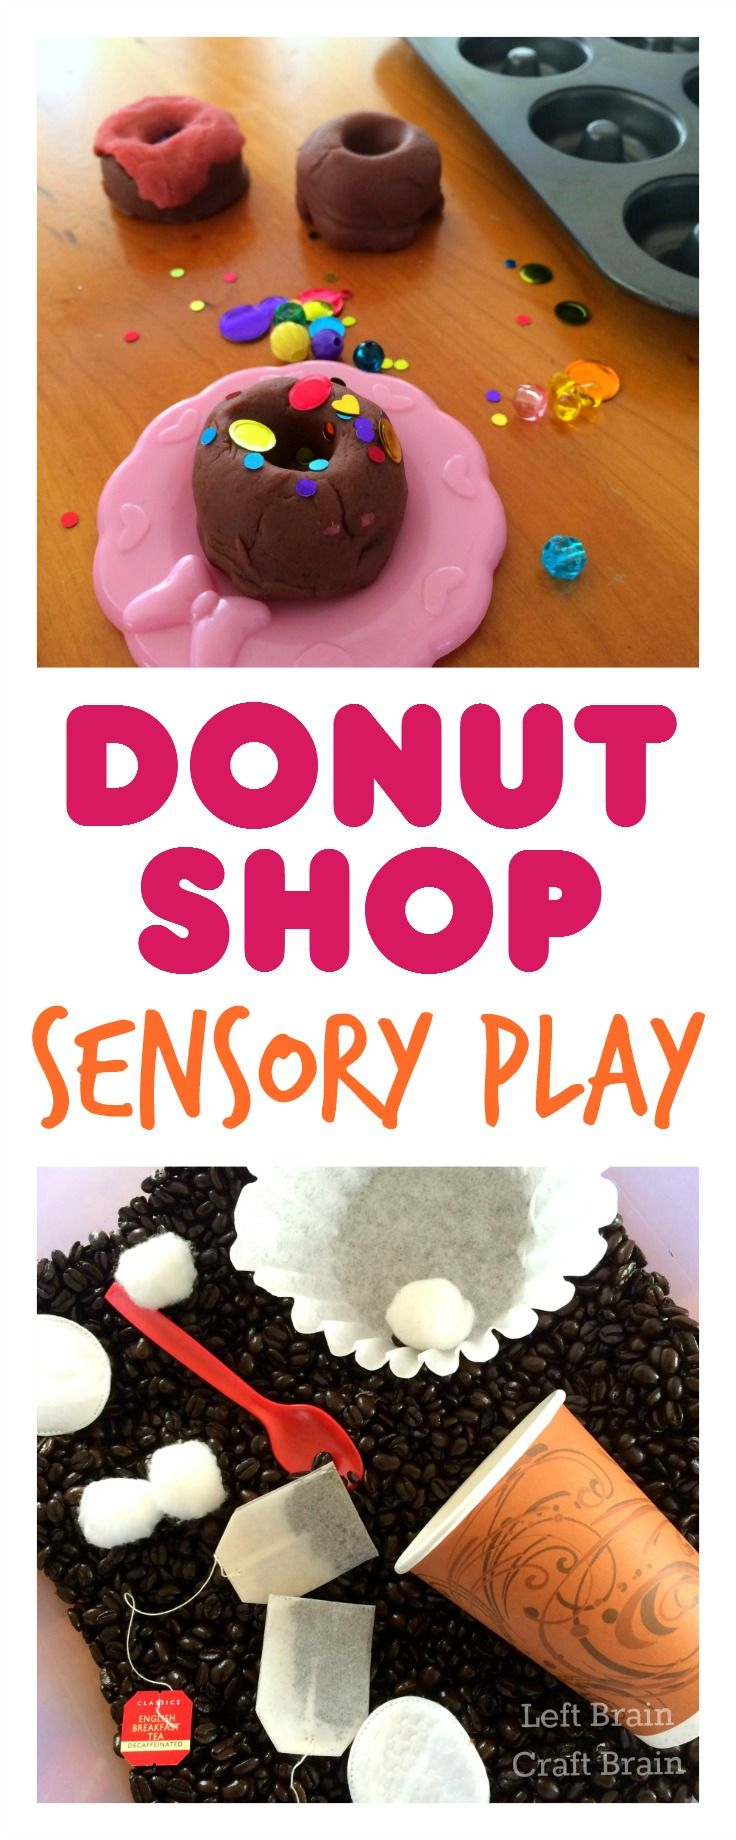 Donut Shop Sensory Play: There's even a recipe for chocolate play dough included in this blog post, and a coffee sensory bin!